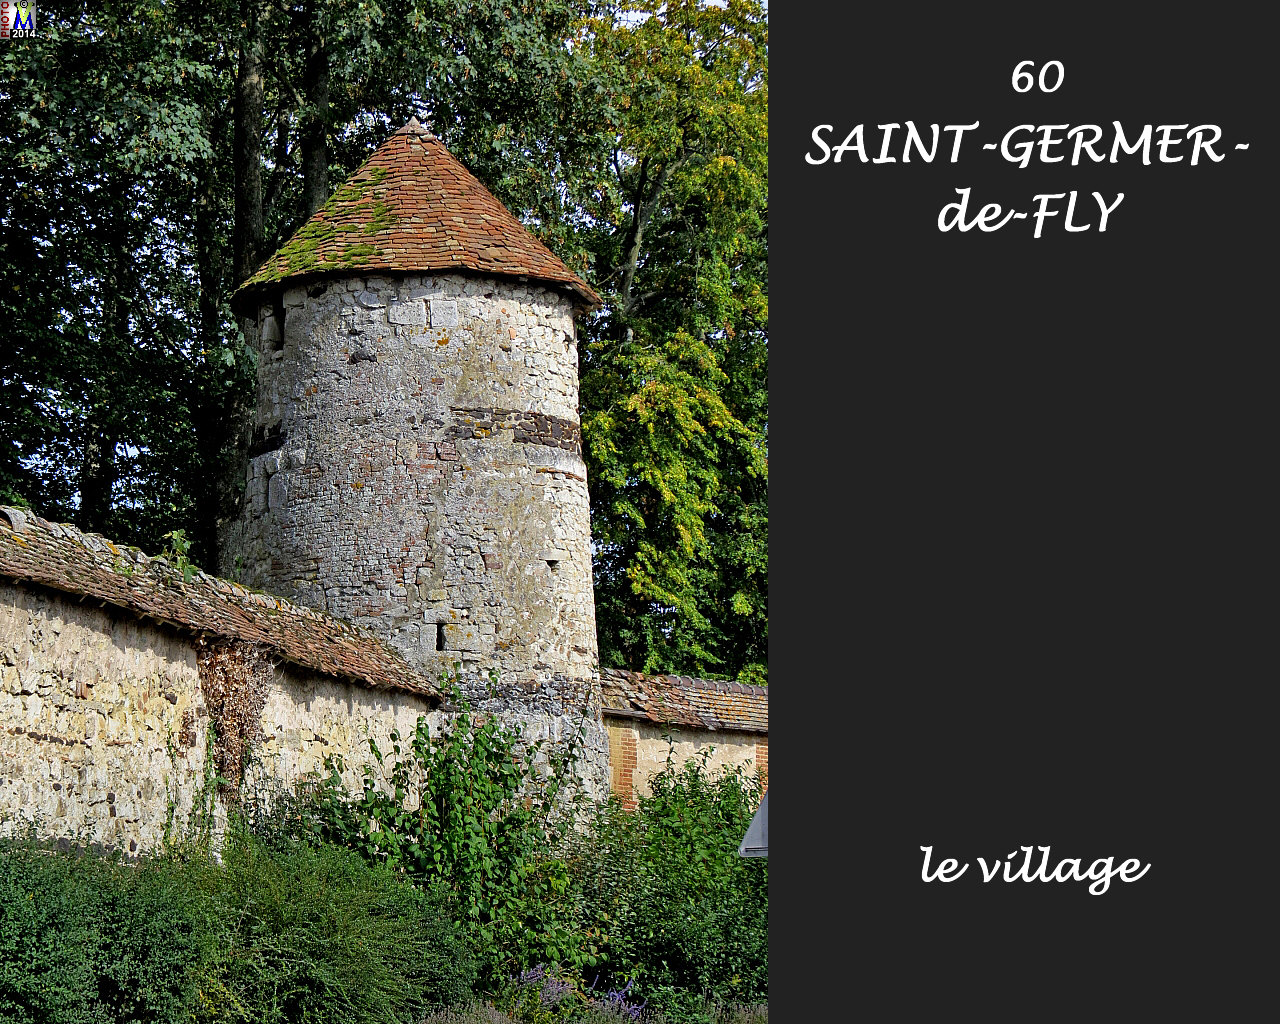 60StGERMER-FLY_village_108.jpg